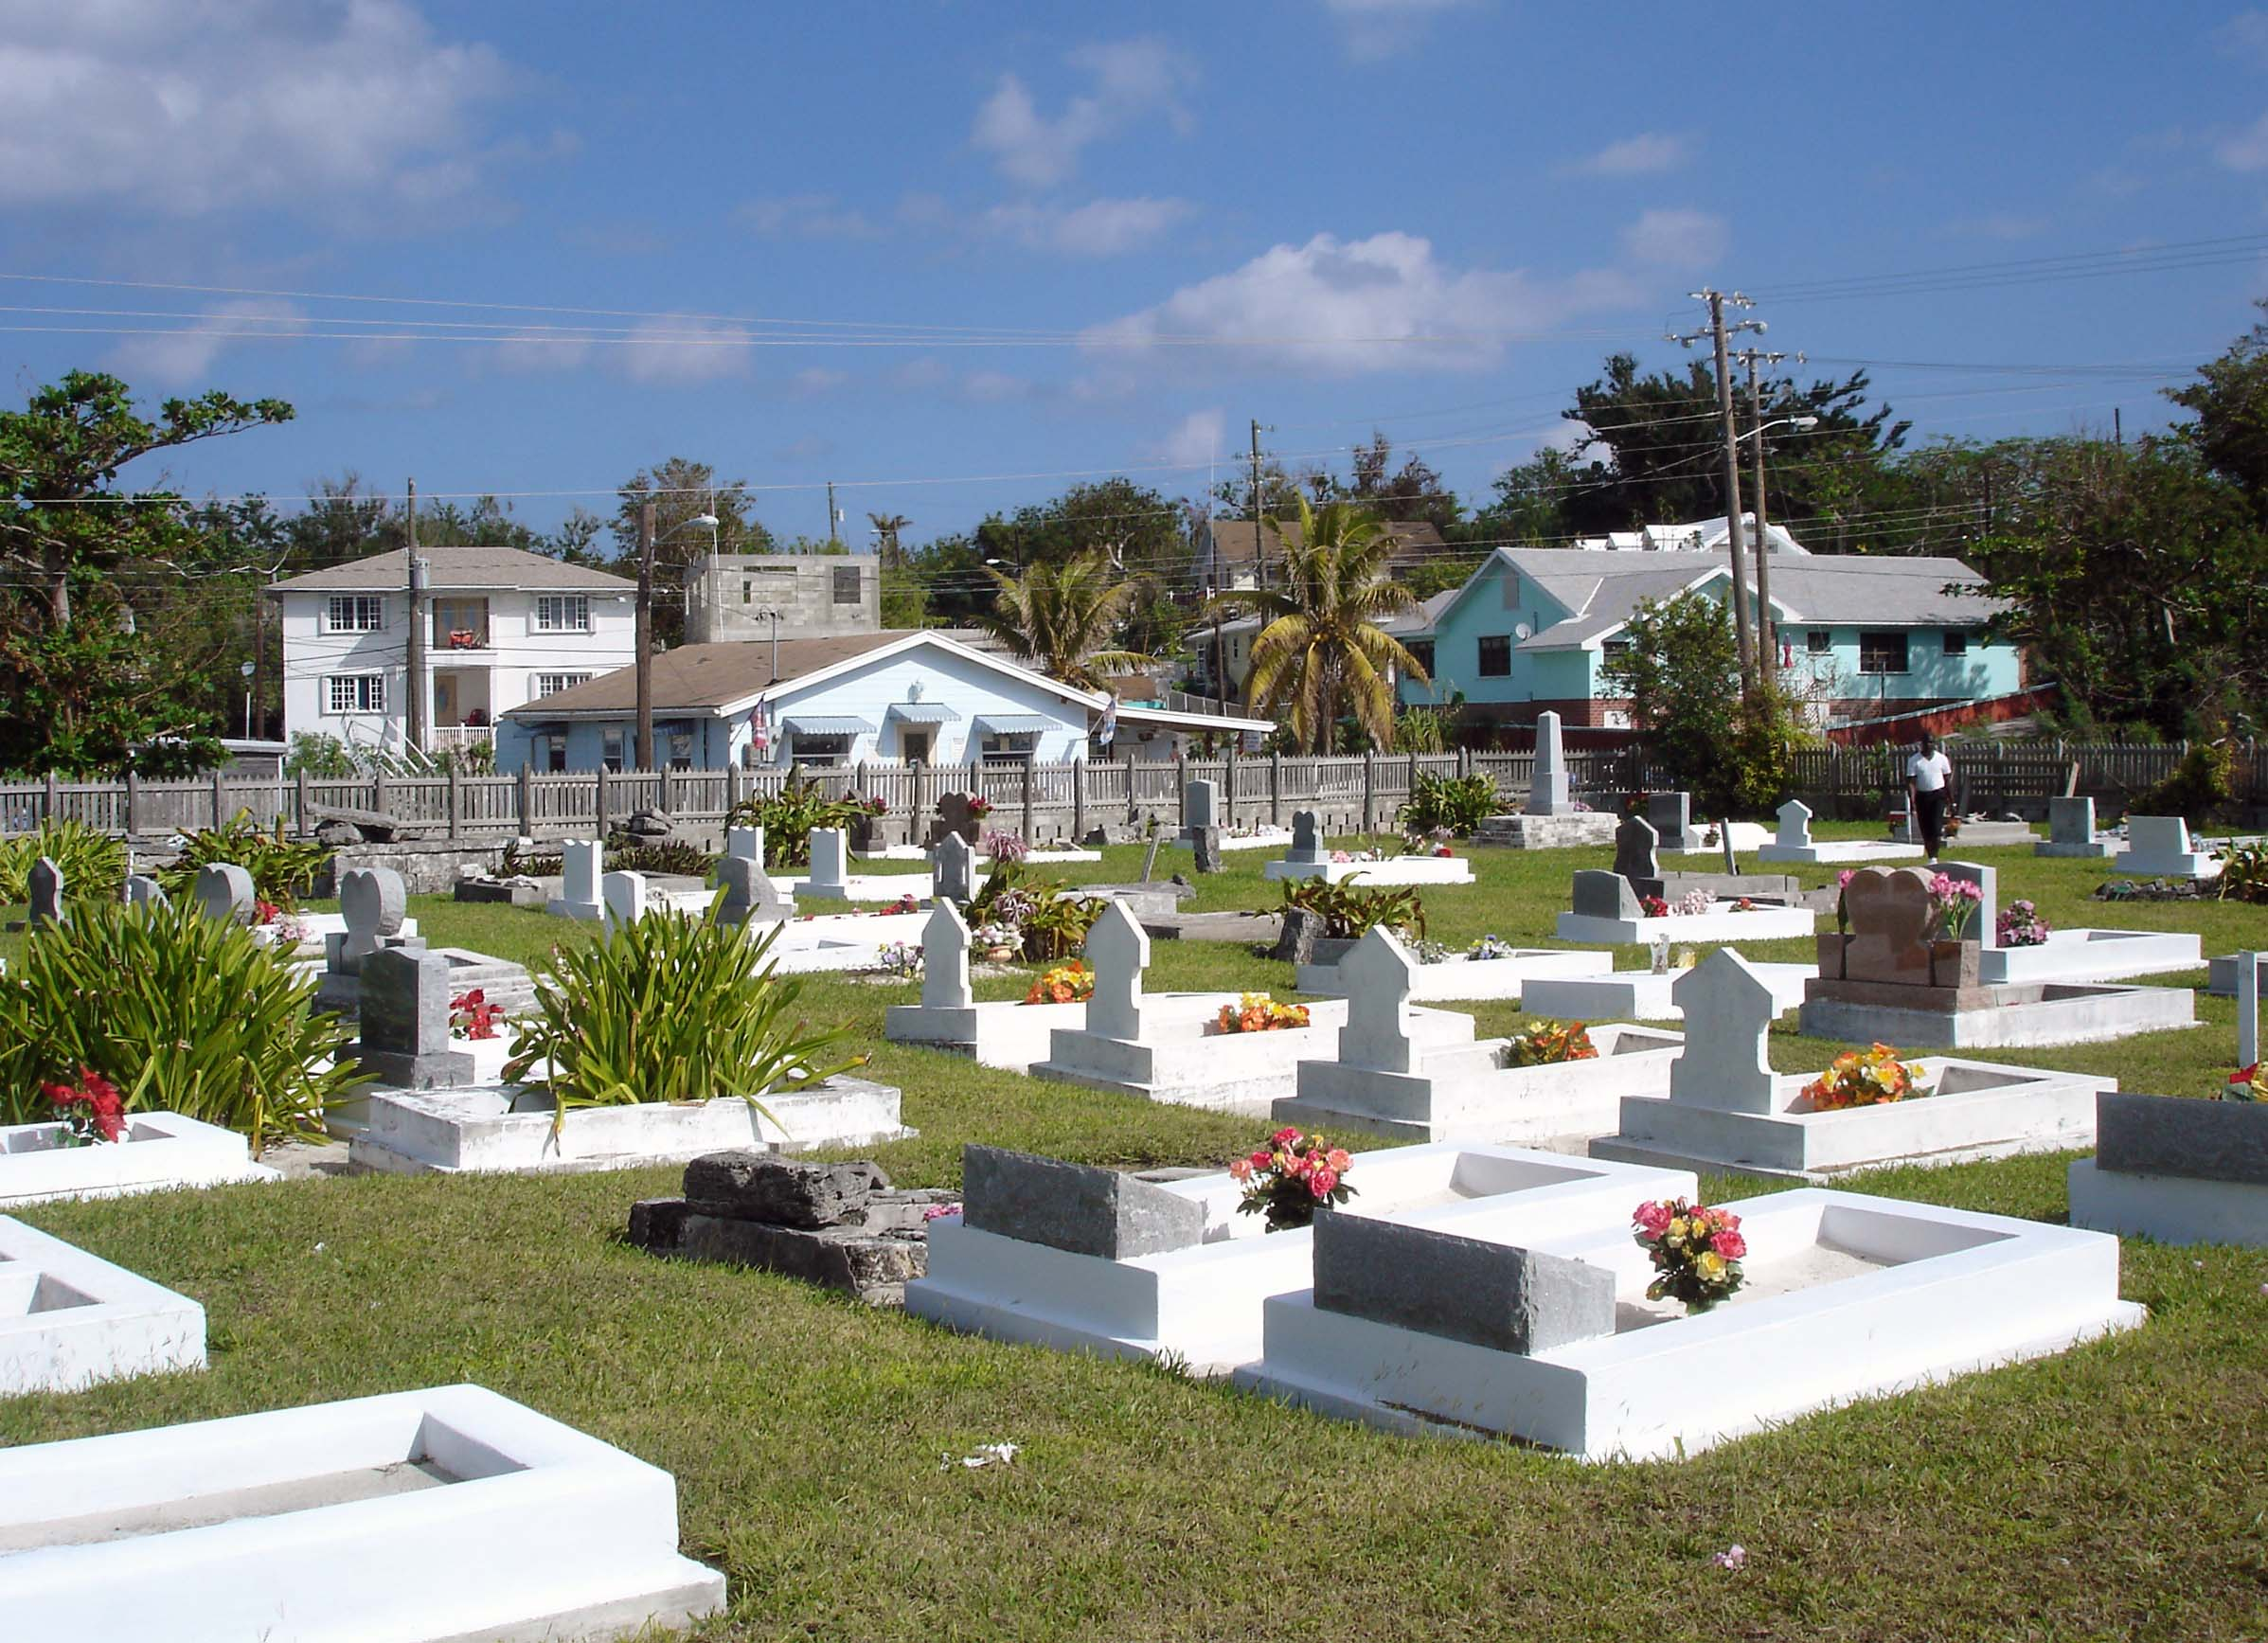 Green Turtle Cay's Historic Cemetery